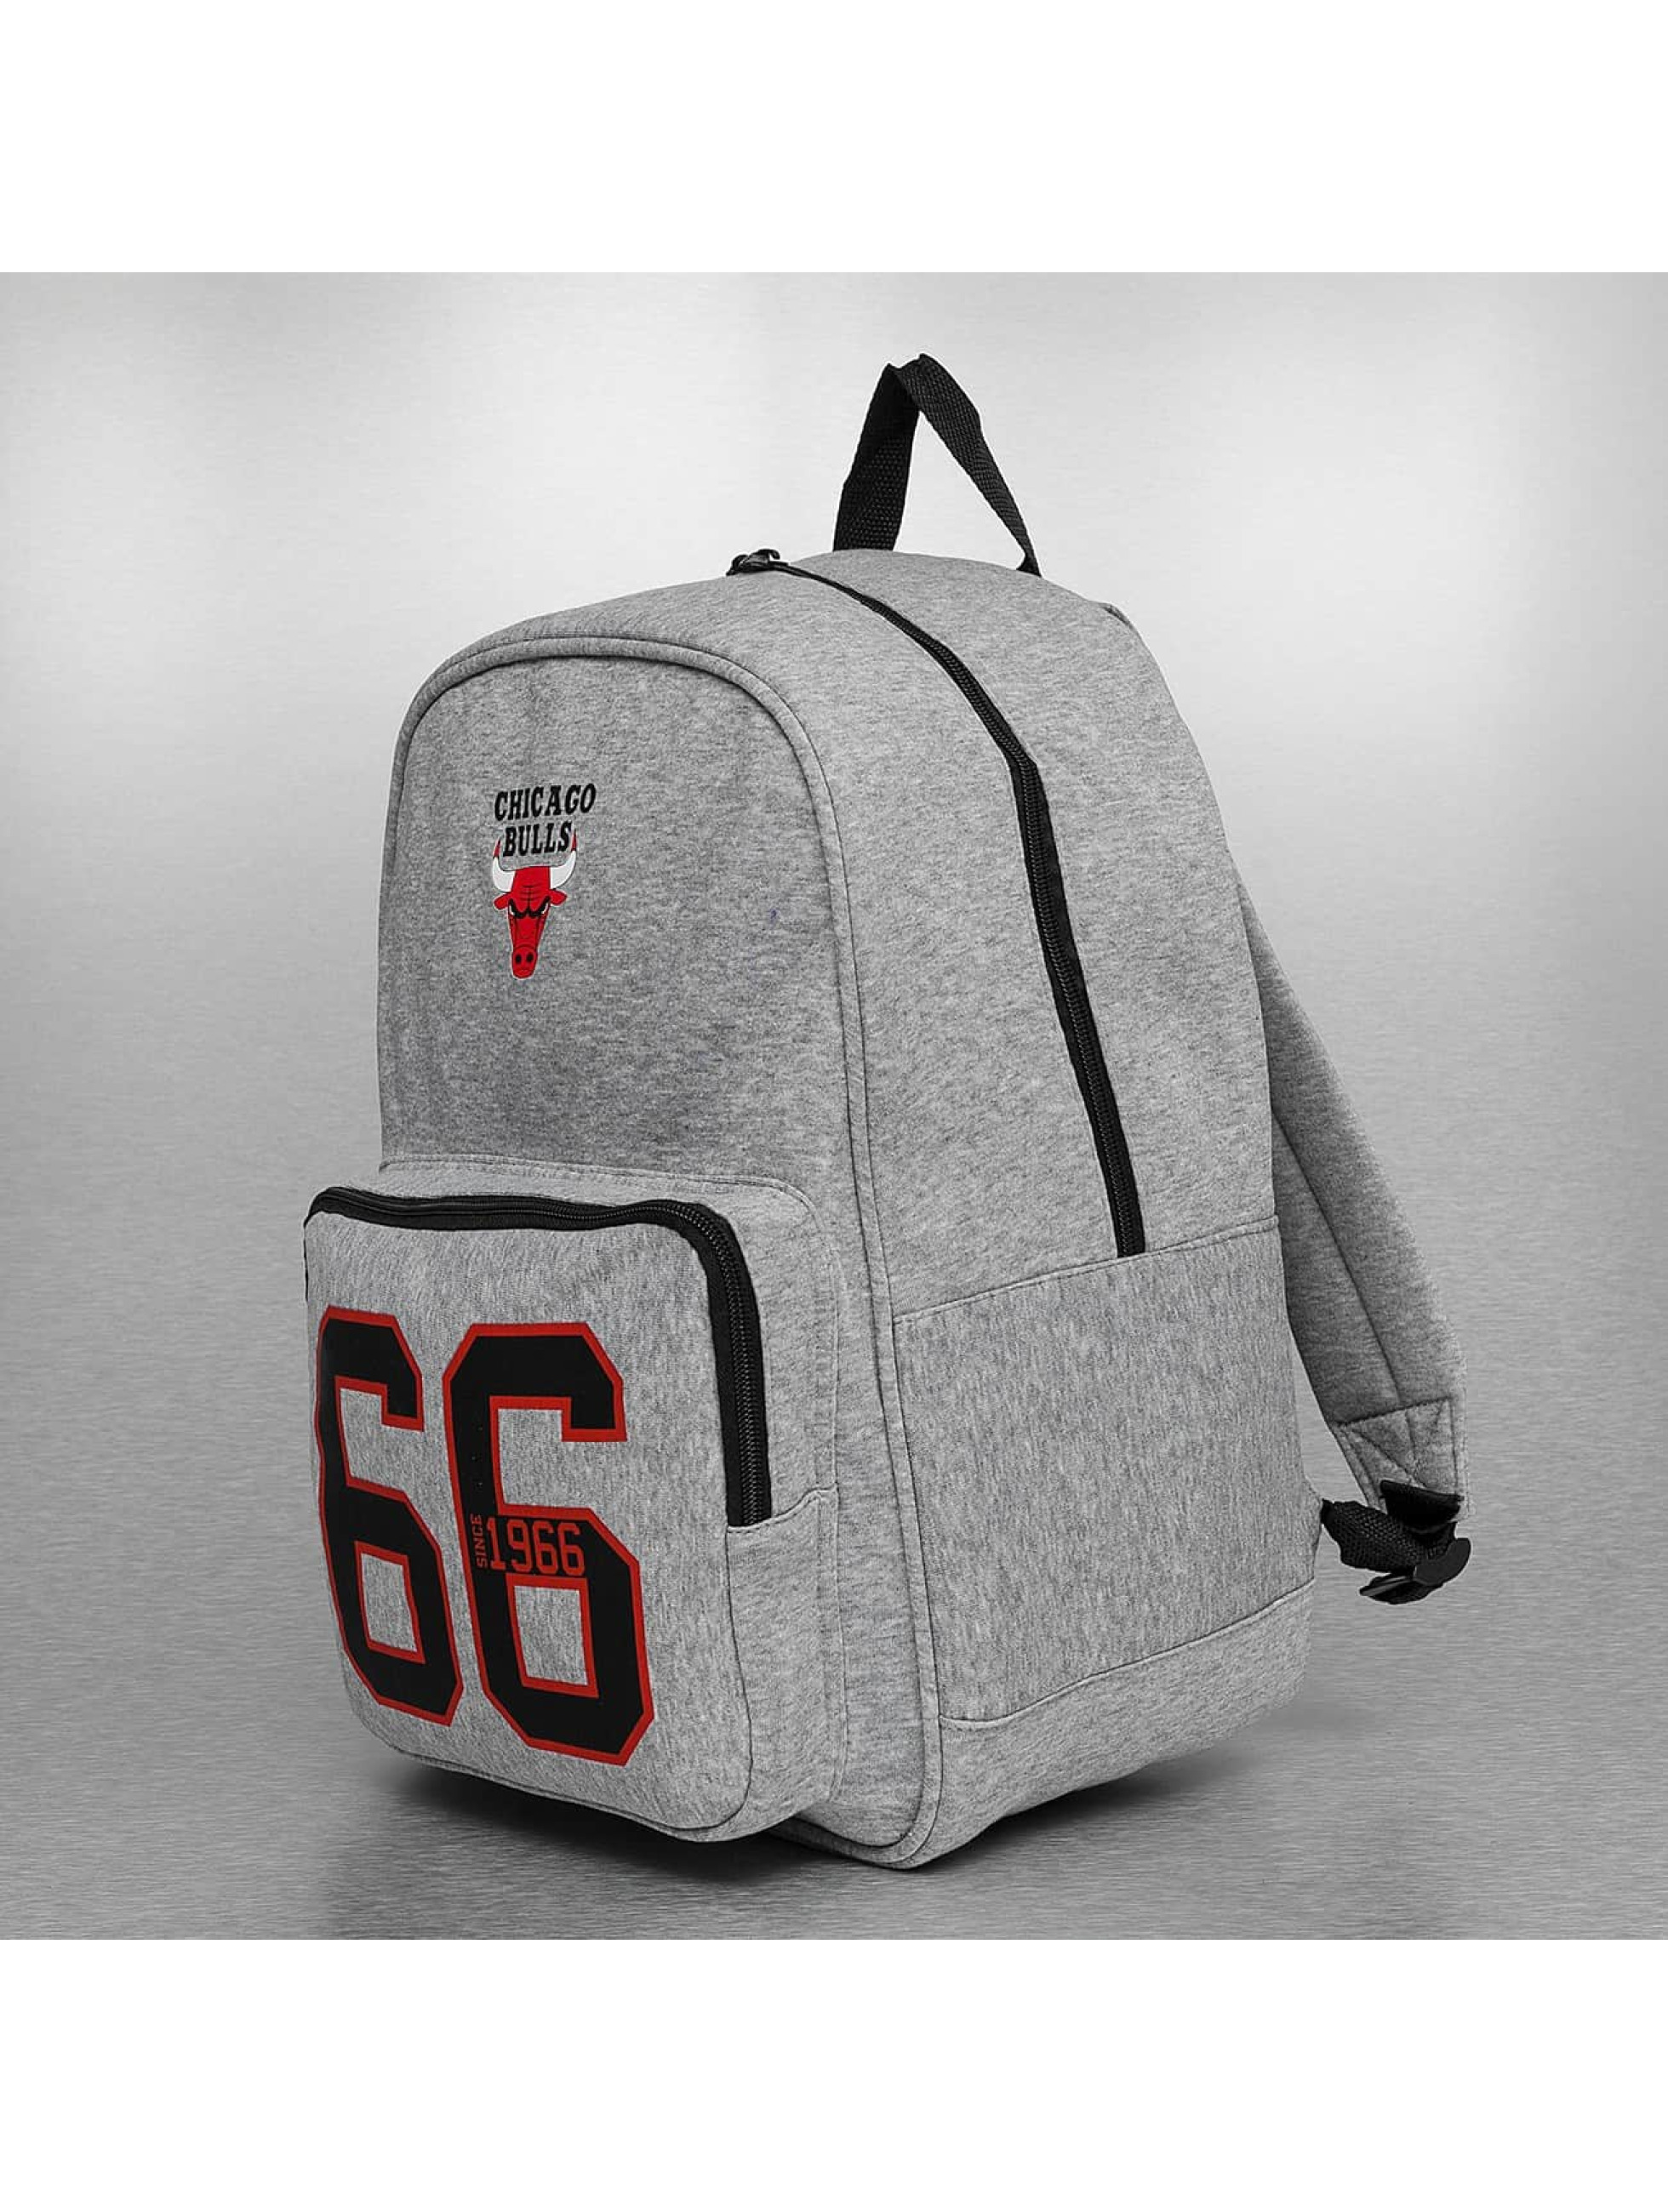 Forever Collectibles Sac à Dos NBA Chicago Bulls gris